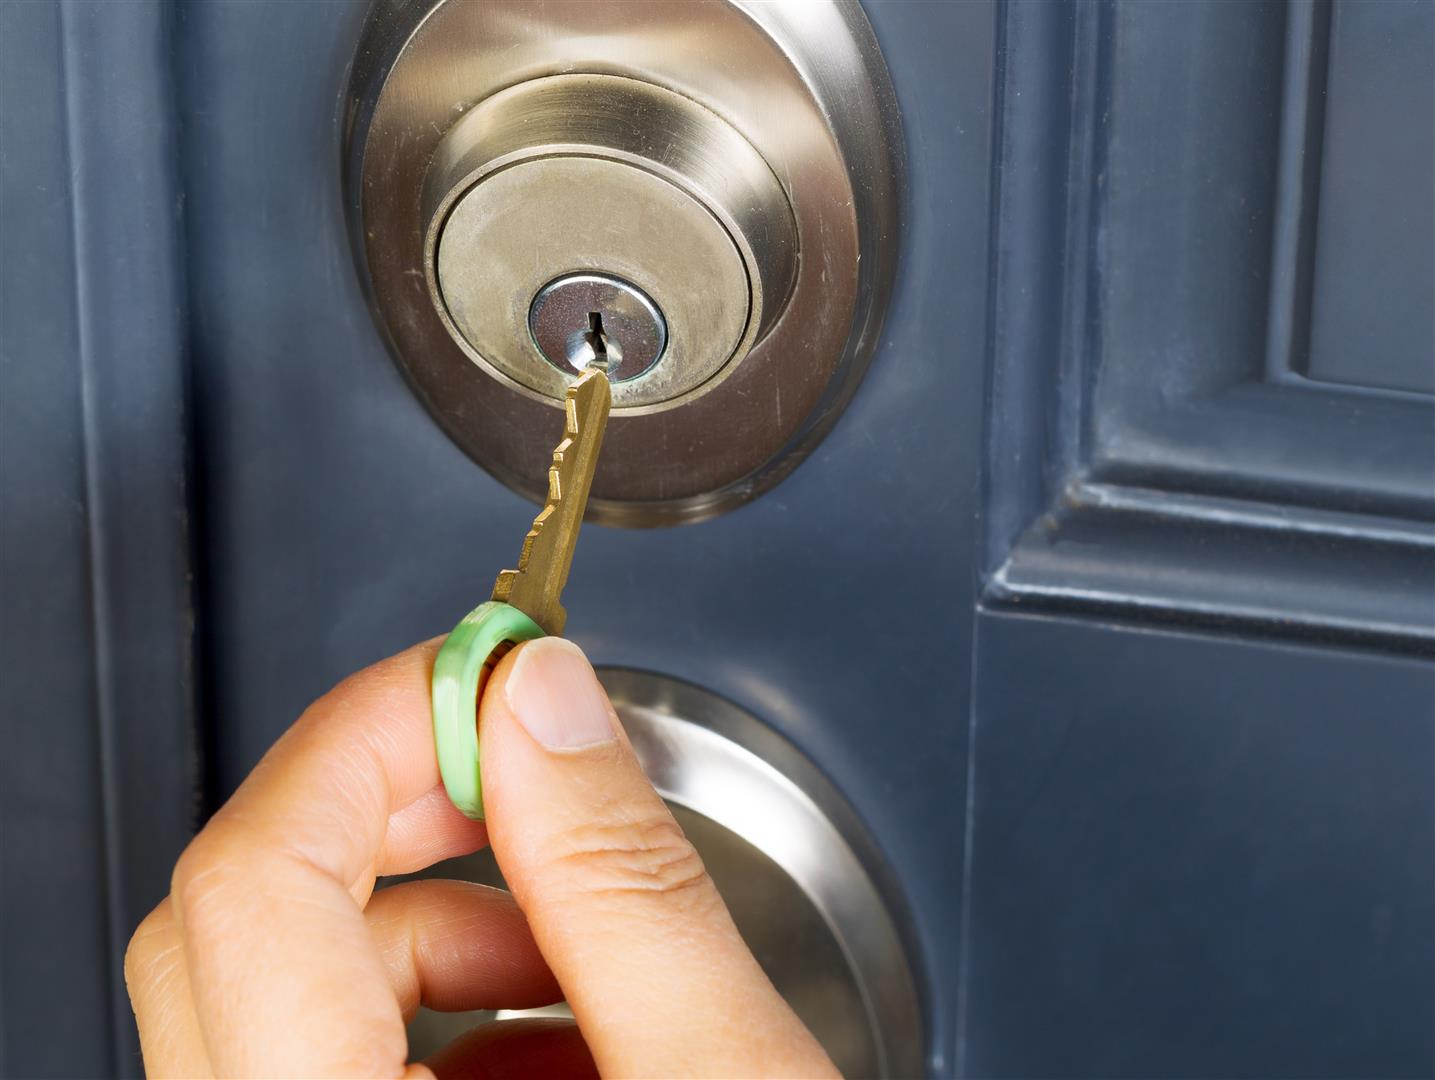 Security Systems, Cameras , Locksmith & Key Services in MA